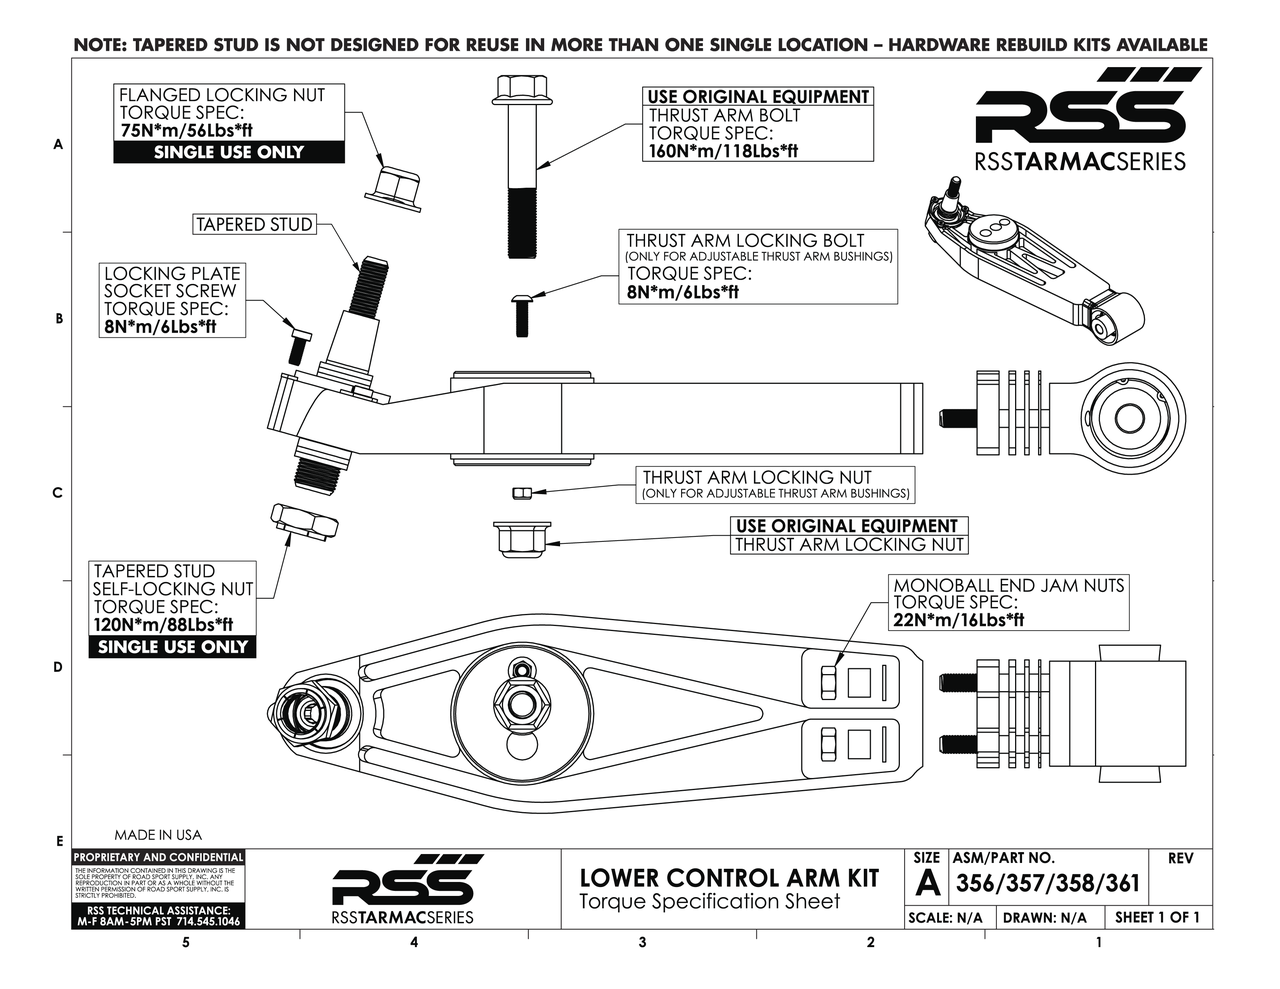 """#373 RSS TARMAC SERIES XL 2-PIECE COMPLETE LOWER CONTROL ARM KIT - Front Axle (Pair of 2). Fits front axle (986, 996, 997 GT3/RS,  997 GT2/RS). Includes: Adjustable/Non-Hydraulic Replacement Thrust Arm Bushings, 1mm/2mm/3mm/7mm Shims, Spherical Monoball Ends.** Note: 981 and 991 Models may require additional Front Litronic or Torque Vector Sensor Brackets.  RSS Tarmac Series Motorsport Lower Control Arms are specifically engineered for use on lowered vehicles that have reduced travel struts/dampers If you need assistance in identifying your suspension type please contact us. For specific fitment information refer to the """"Chassis Fitment Guide and Lower Control Arm Fitment Notes"""" (See Images Below).  The RSS Tarmac Series – Motorsports Control Arms are designed for the Porsche driver who demands the absolute maximum in precision handling, feedback and control from their chassis. This system has been specially engineered to provide unmatched performance, quality, strength and serviceability. RSS Tarmac Series Control Arms address the performance related shortcomings of the OEM rubber mounted suspension components which were designed to reduce road noise and vibration for everyday street use. The use of rubber injected moldings in mounting components such as the control arms, thrust arms, upper links and toe arms is a compromise in regards to maximum suspension performance. The soft rubber deflects under suspension load which in turn causes unwanted movement (deflection) between the suspension and chassis. Data also shows that temporary changes in spring rates can occur as well. These movements and changes result in unnecessary corrections and inputs from the driver.  FEATURES & BENEFITS • Completely Serviceable: For the extreme, repetitive track day enthusiast or racer, our high strength steel alloy spherical bearings (with a friction reducing, longevity increasing Teflon liner) can be replaced unlike the motorsports arms, in which case a new set of arms will need to """